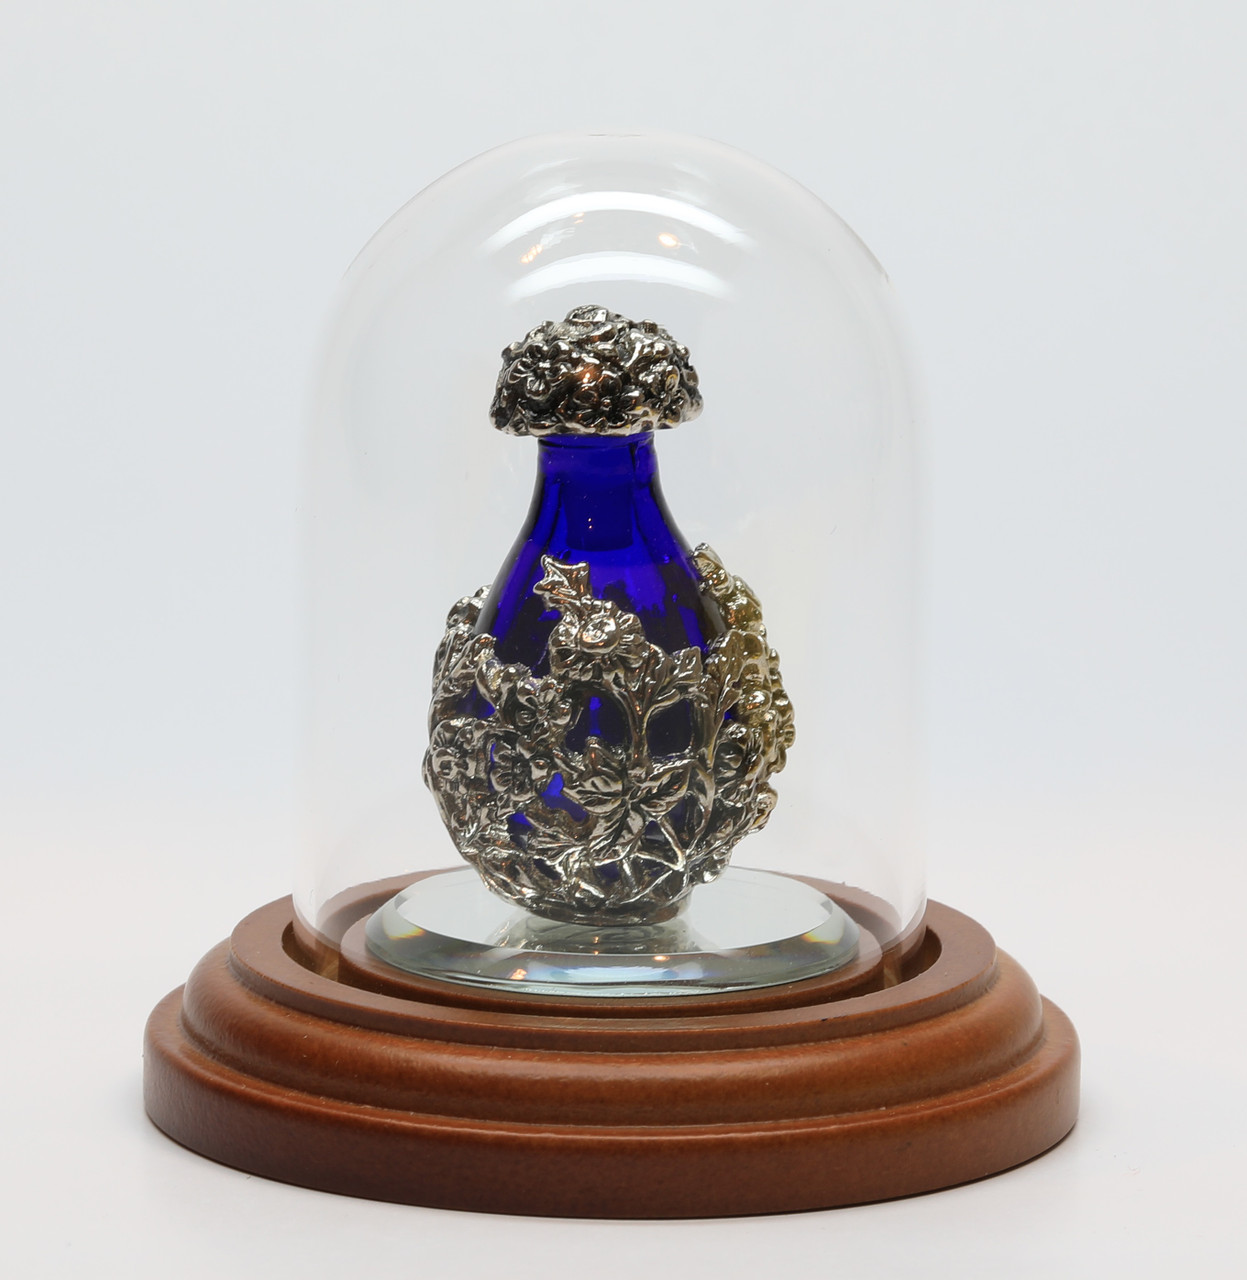 "Blue Silver Victorian Tear Bottle on Optional 1 1/2"" mirror inside Optional Short Mini-Dome, Both Sold Separately"